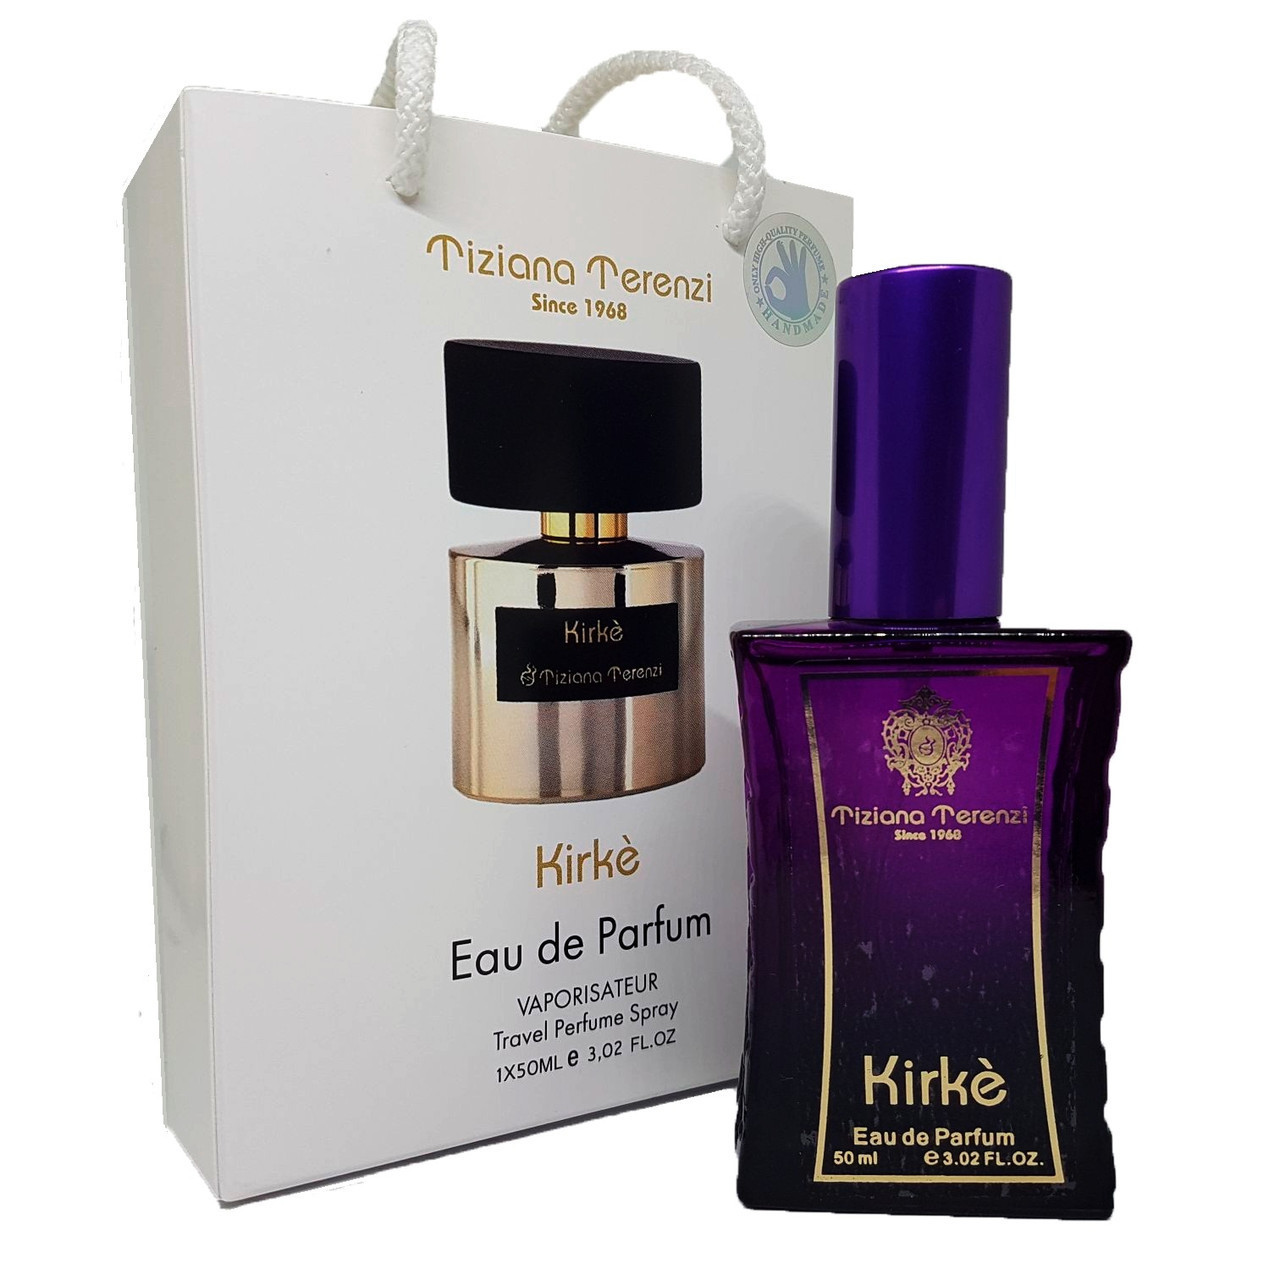 Tiziana Terenzi Kirke - Travel Perfume 50ml